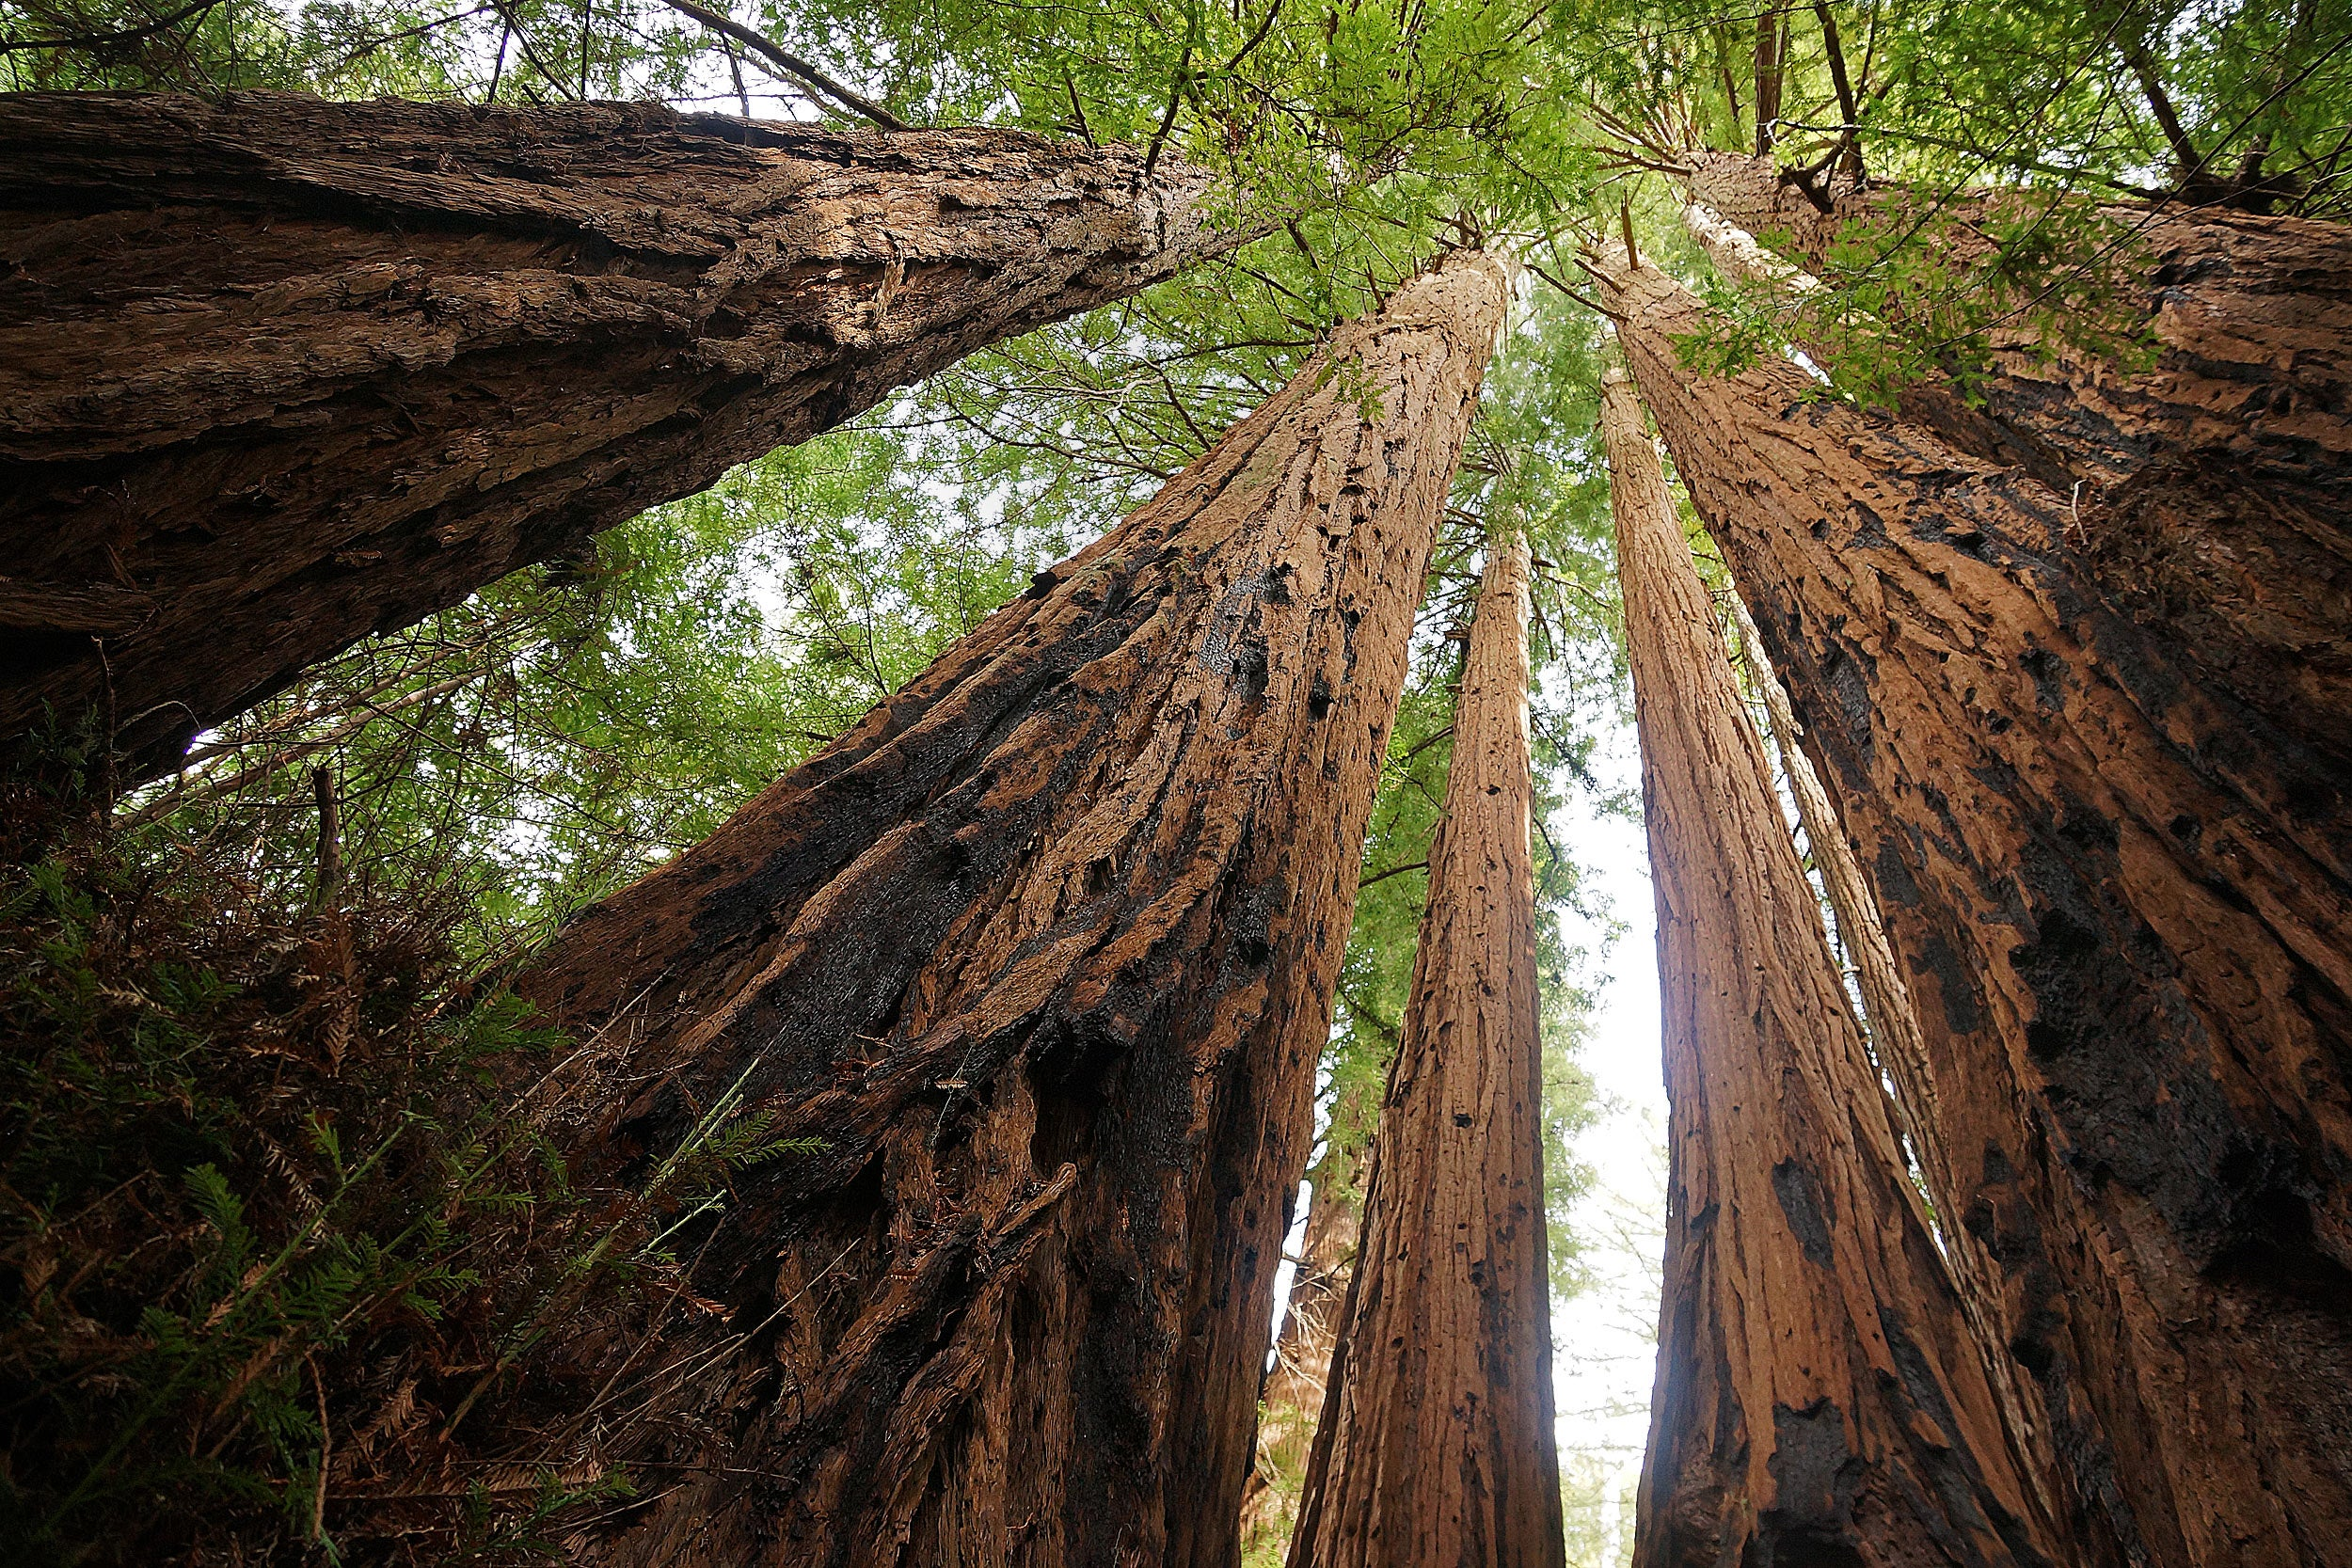 Redwoods can grow more than 300 feet tall and can live for more than 1,000 years.